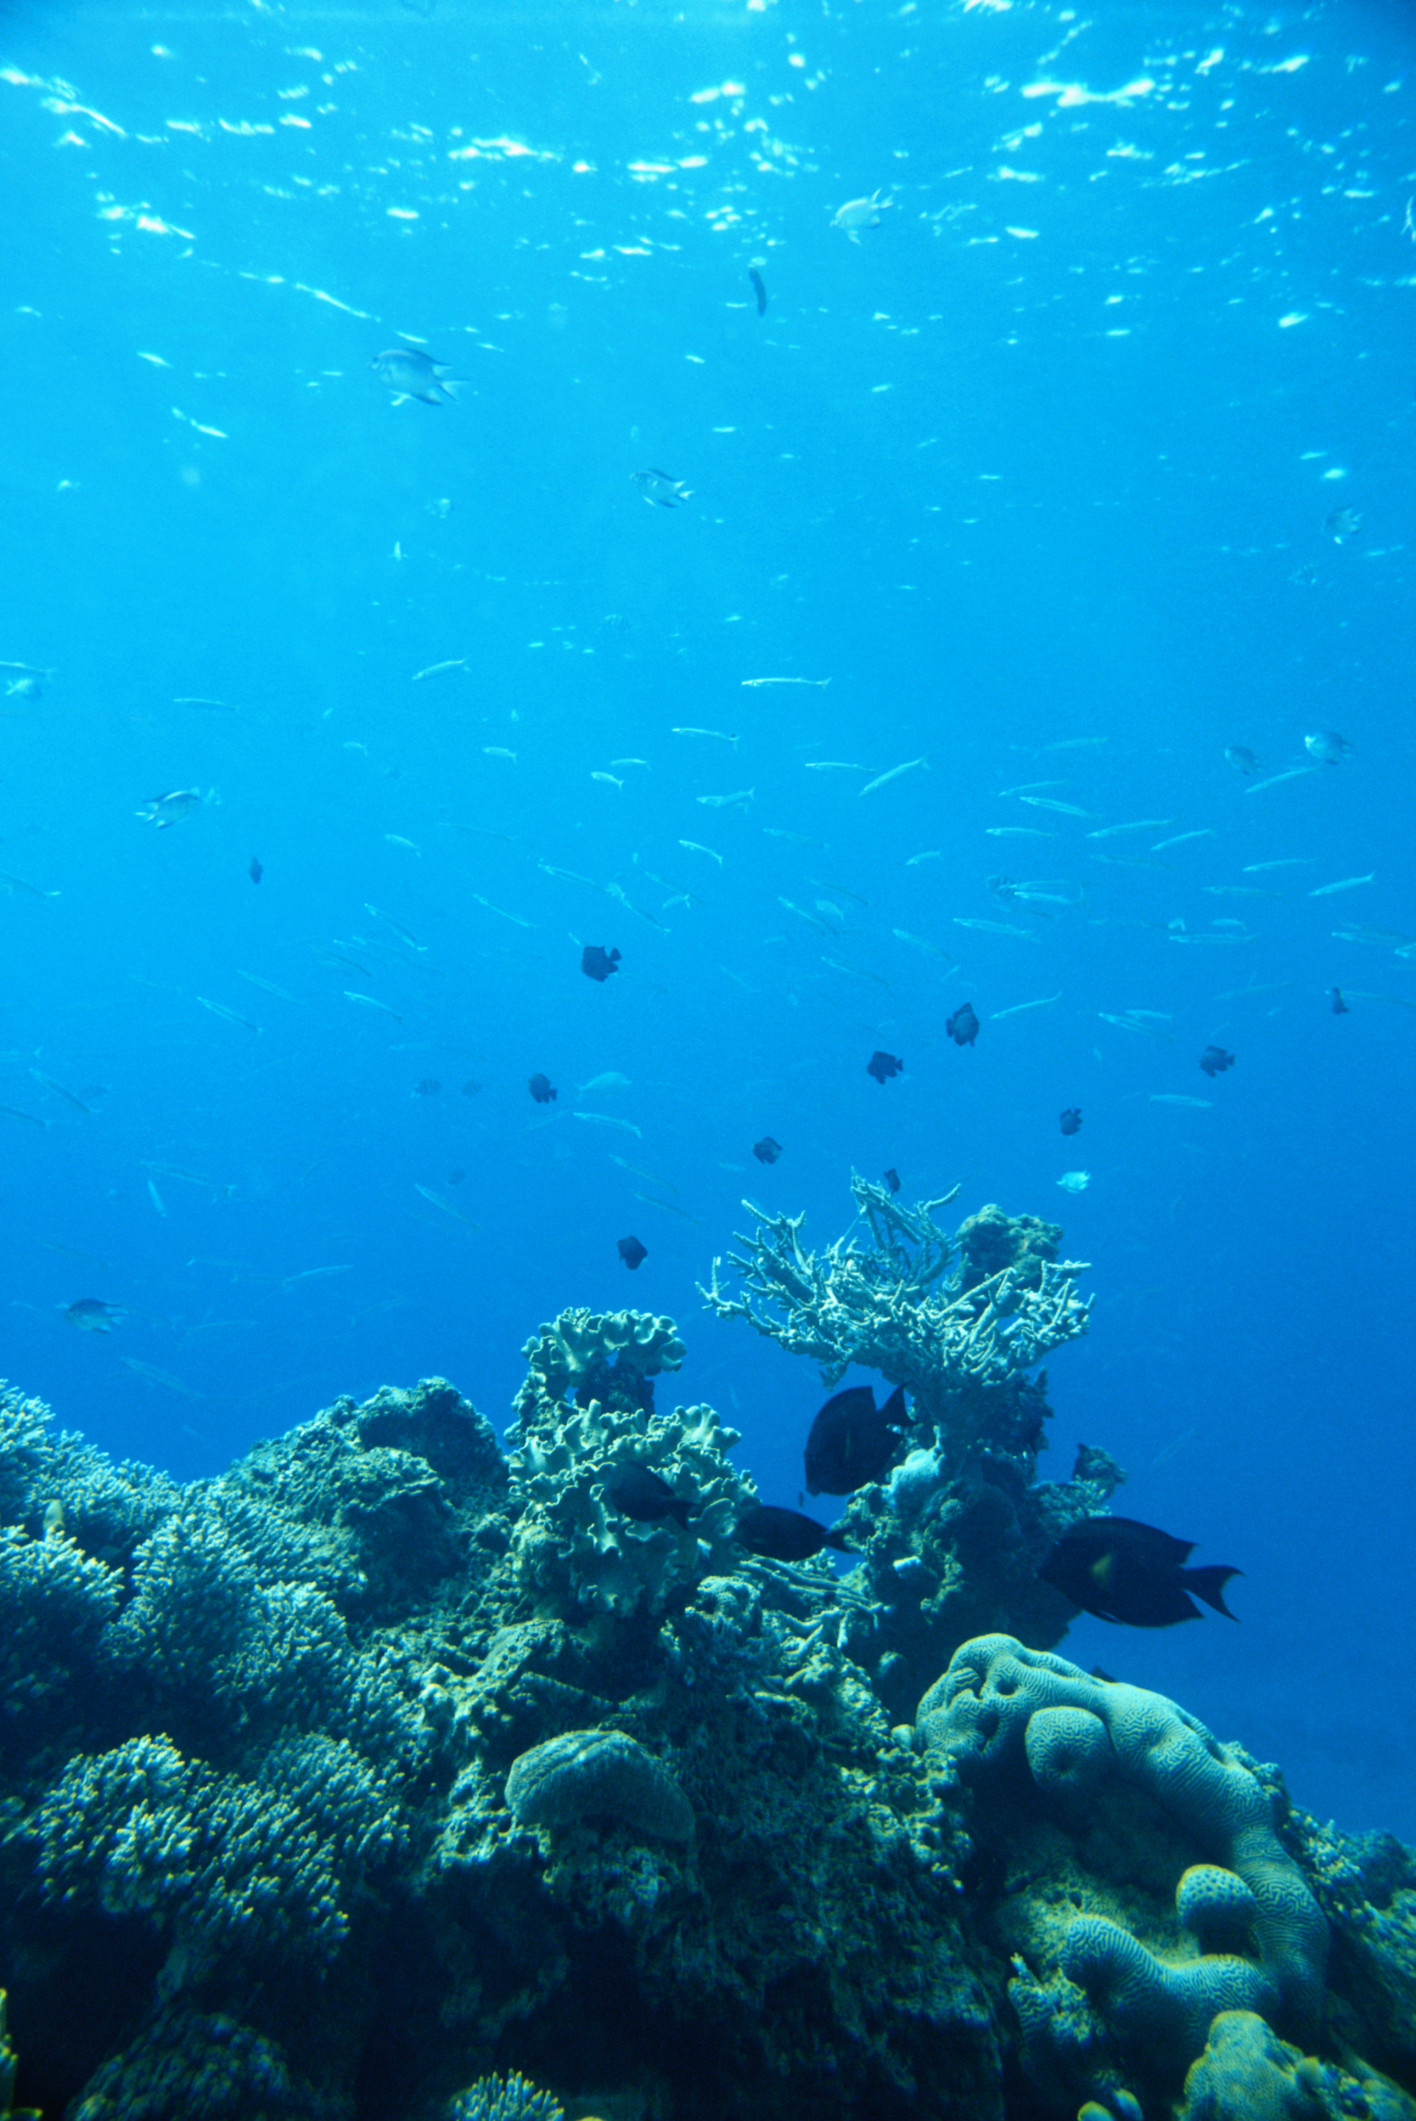 Where Does Photosynthesis Take Place In The Ocean